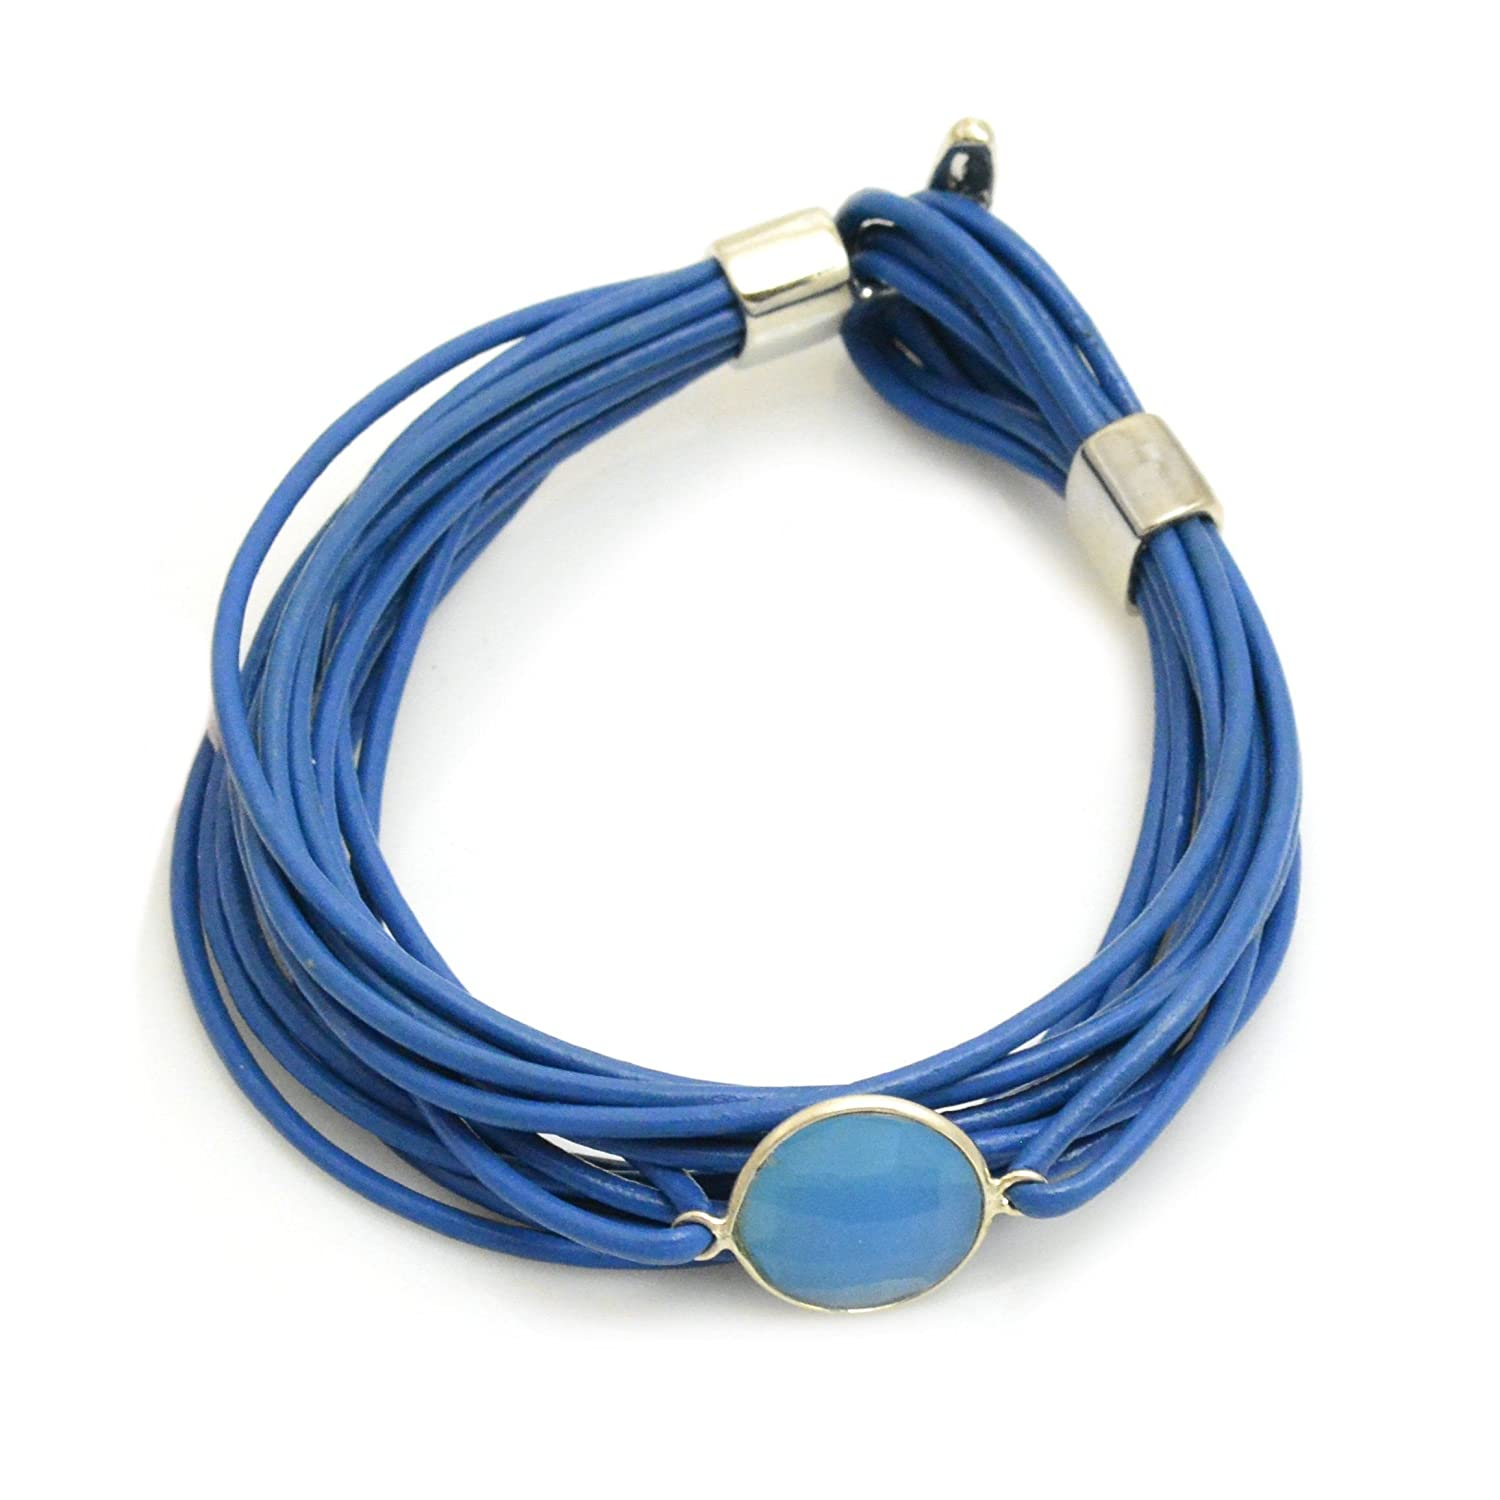 Lisa Robin Jewelry Bezel Faceted Gemstone Leather Bracelet in Blue and Blue Chalcedony